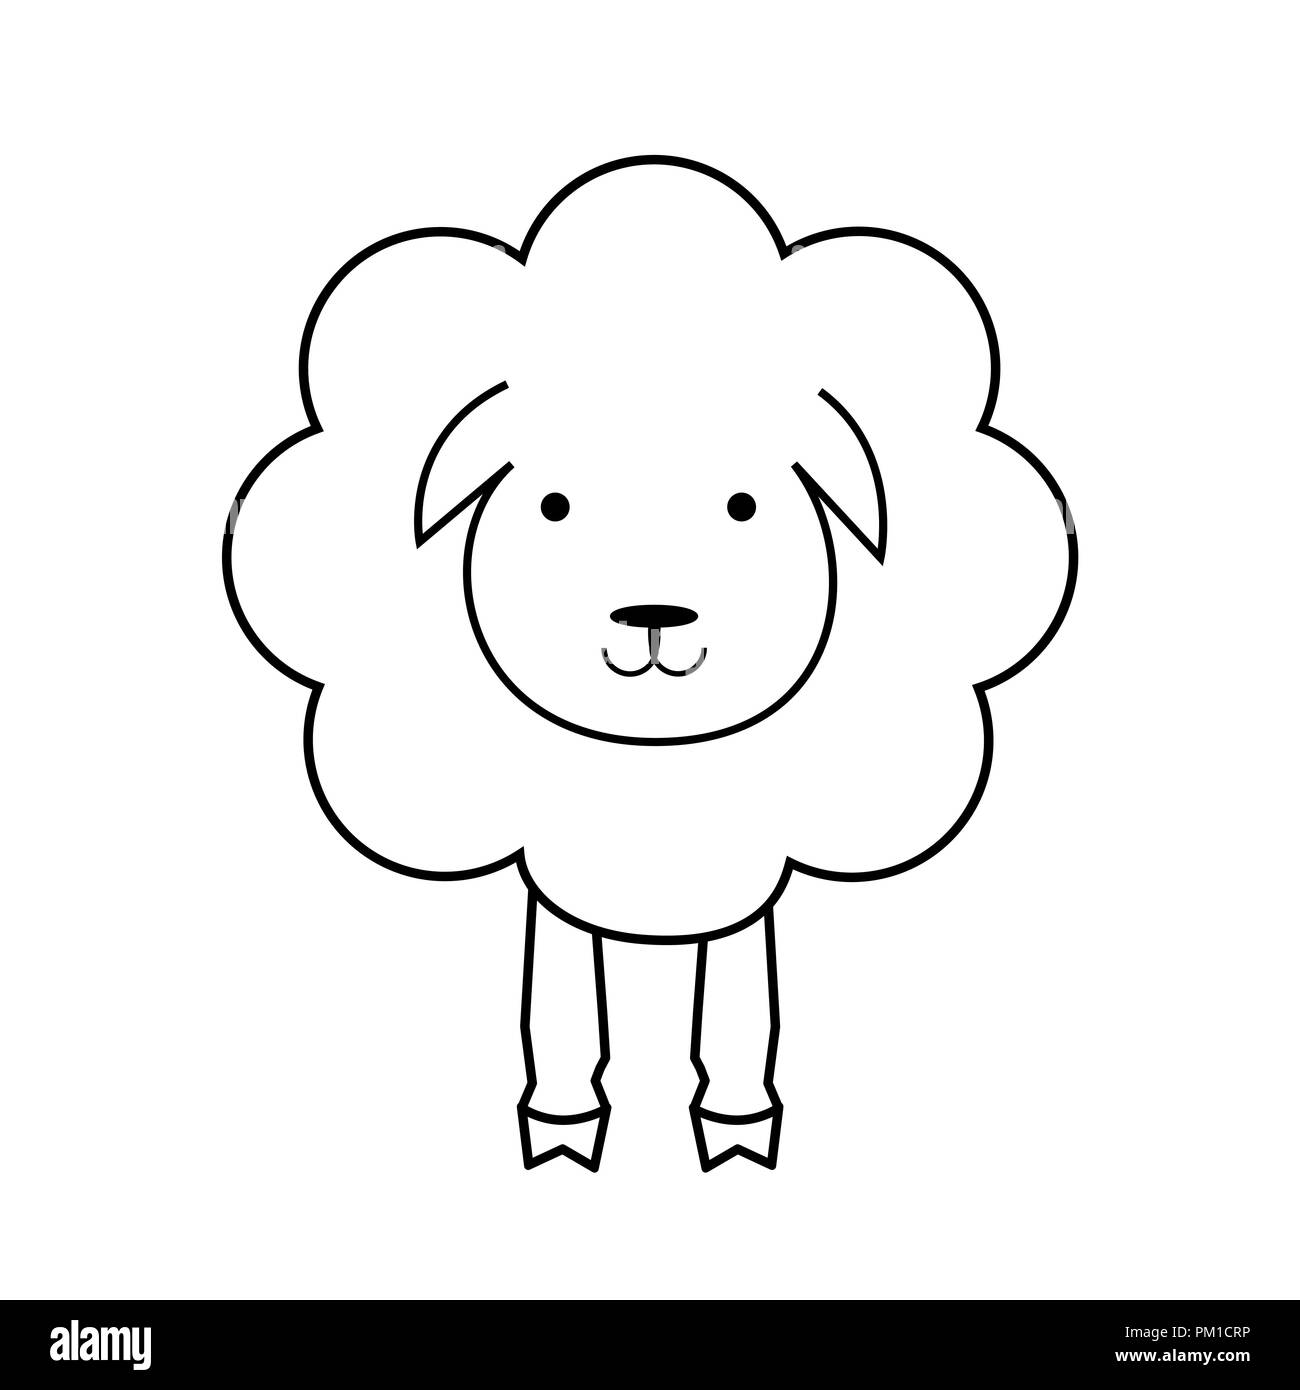 Cartoon sheep animal. Line lamb, outline icon. Wool textile sign, black and white. Fabric icon - Stock Vector